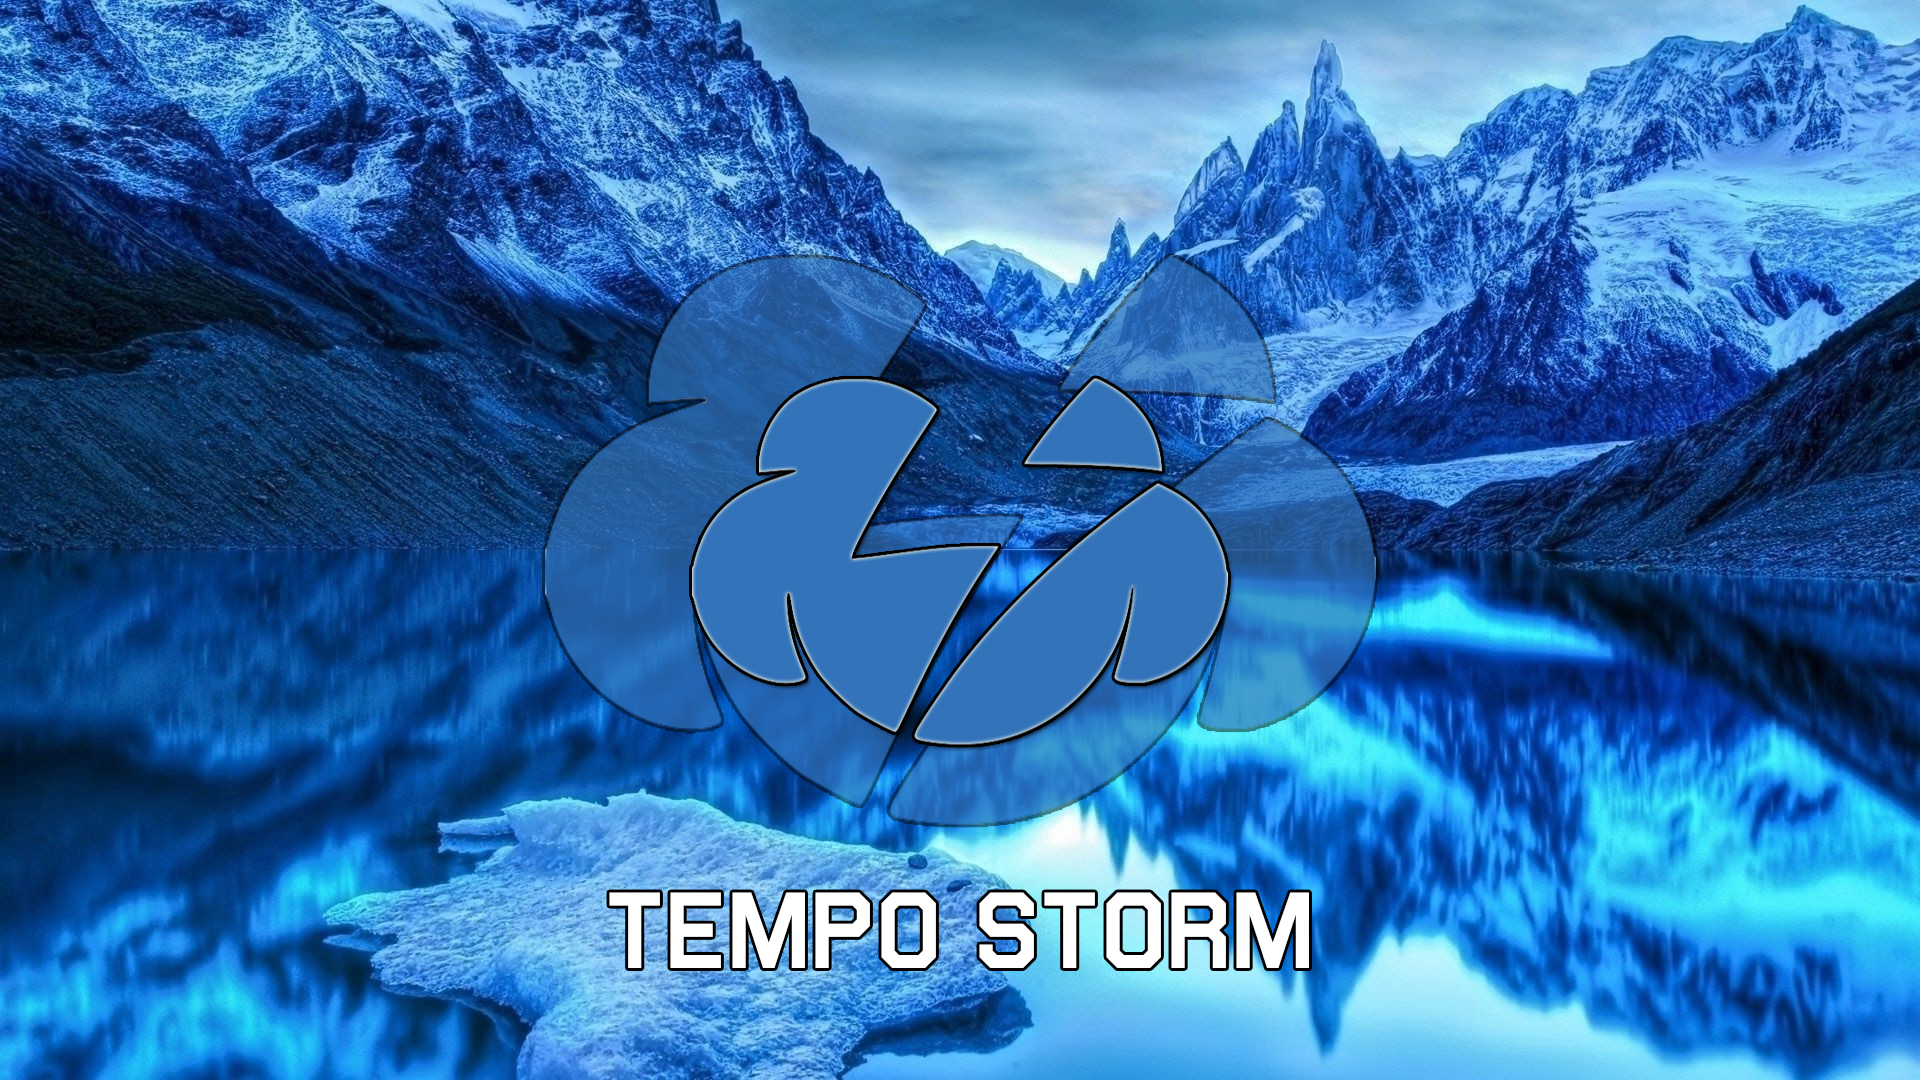 Tempo Storm Artic Lake reflection